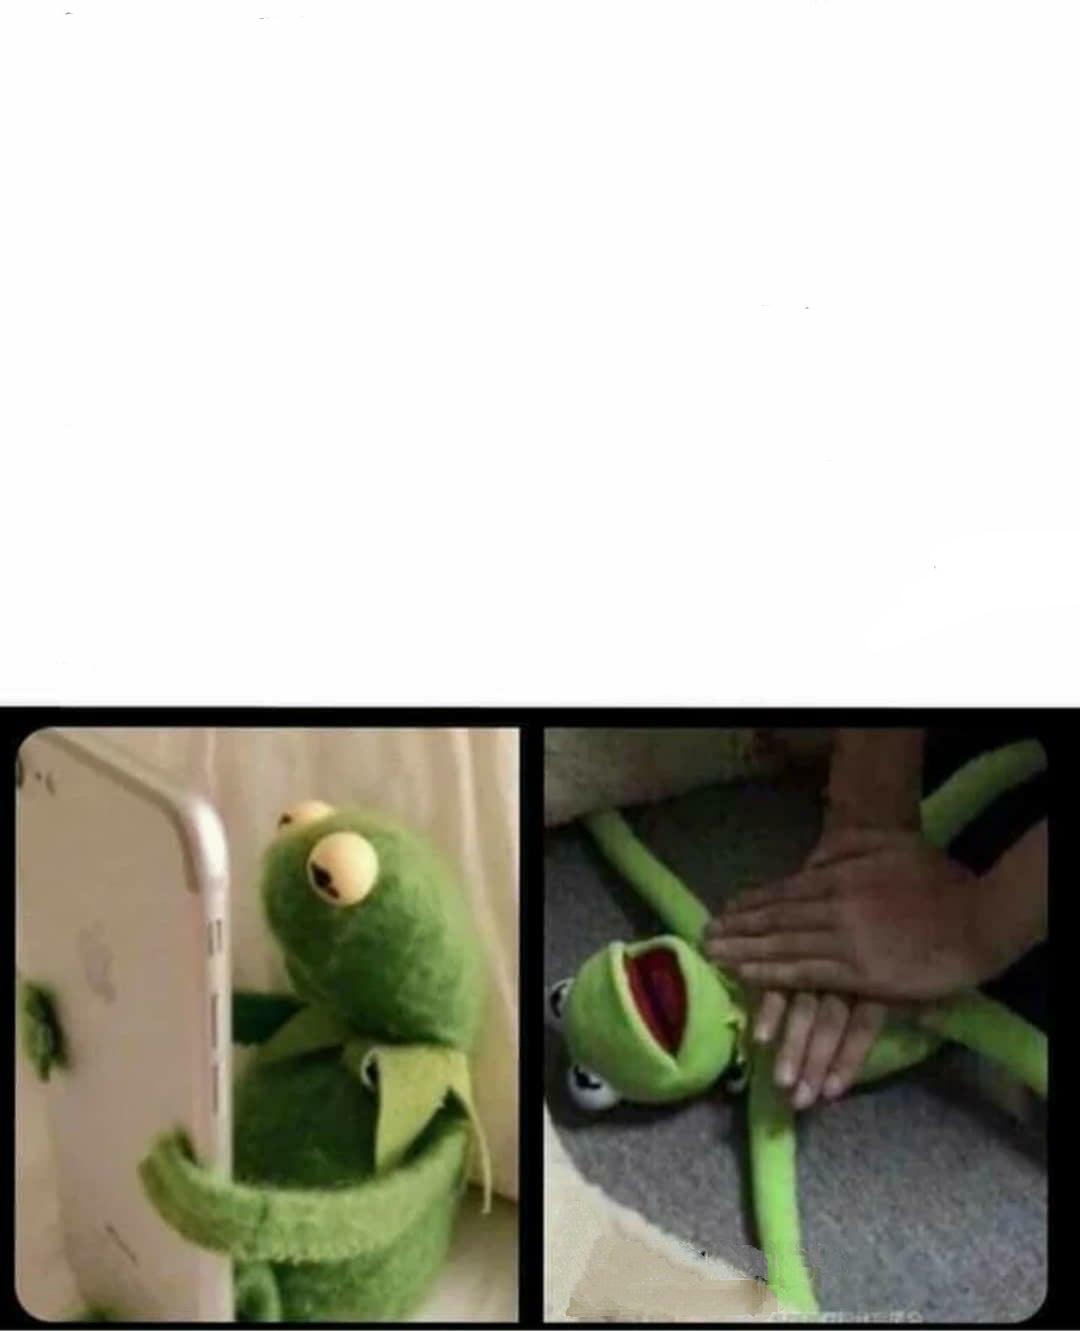 Kermit Getting Choked : kermit, getting, choked, Kermit, Dying, After, Looking, Phone, MemeTemplatesOfficial